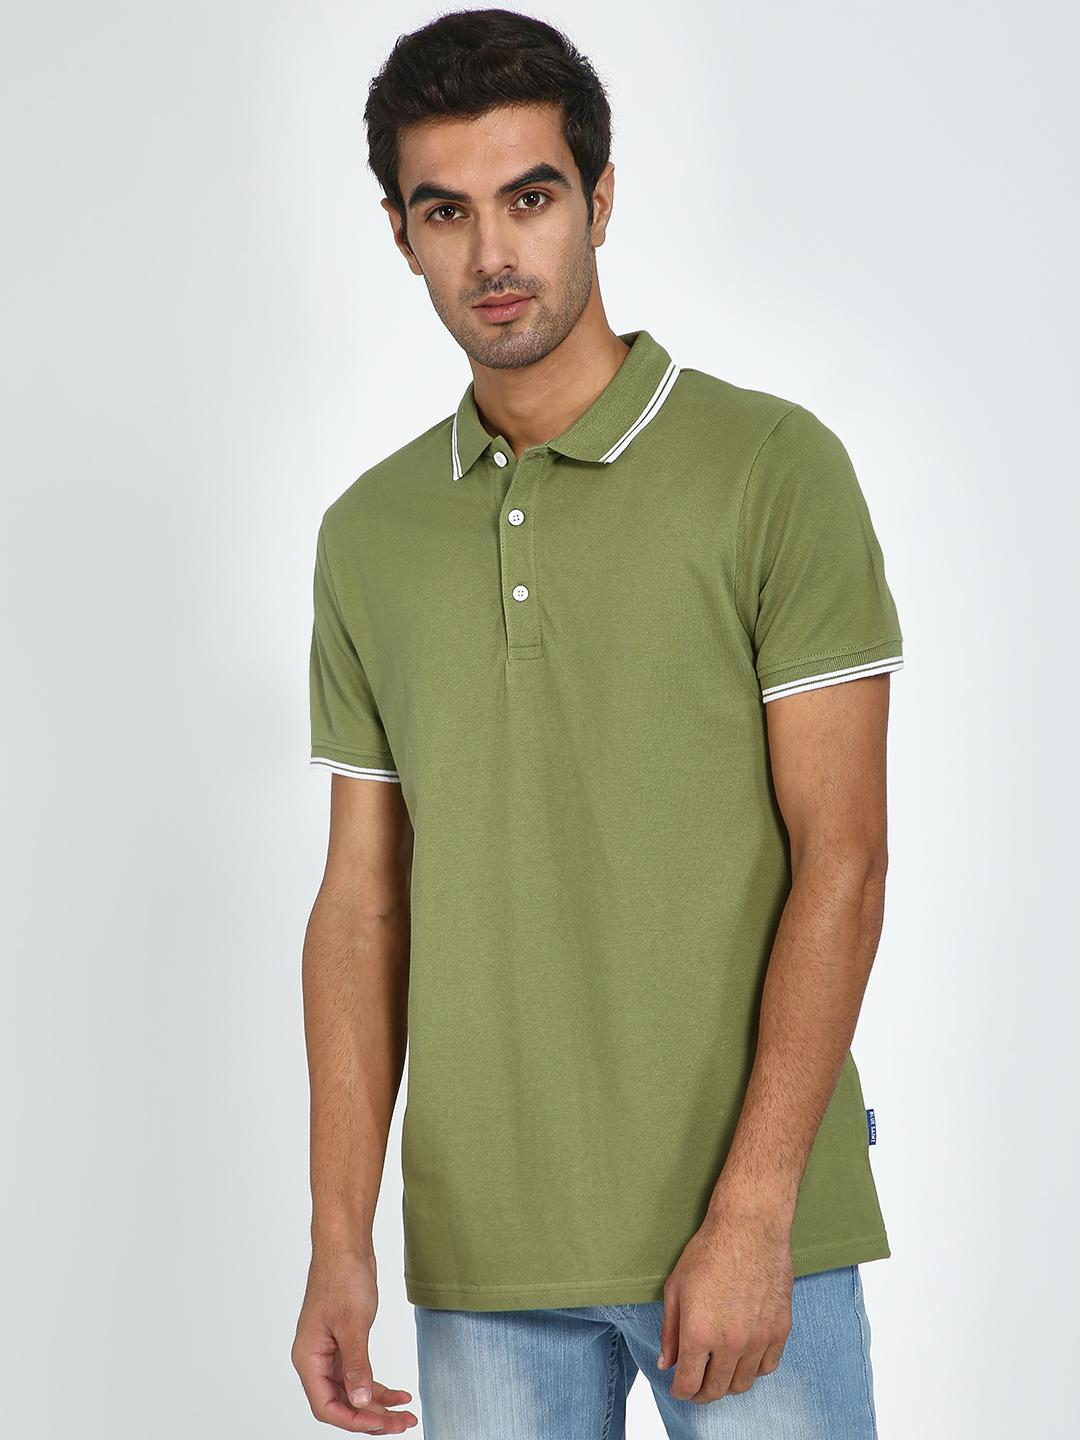 Blue Saint Olive Contrast Piping Polo Neck T-shirt 1